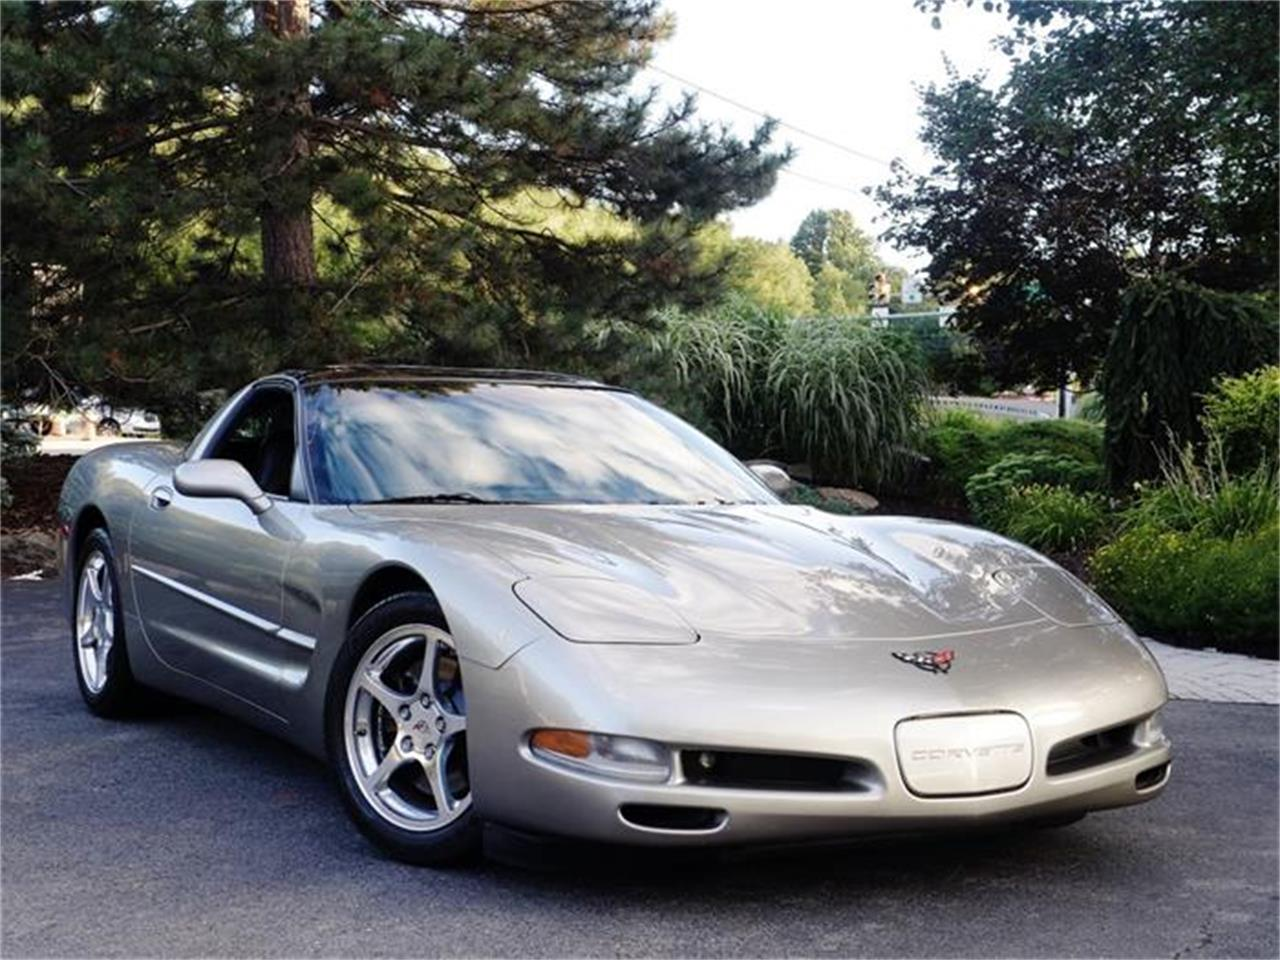 Large Picture of 1999 Chevrolet Corvette - $17,900.00 - HB0J